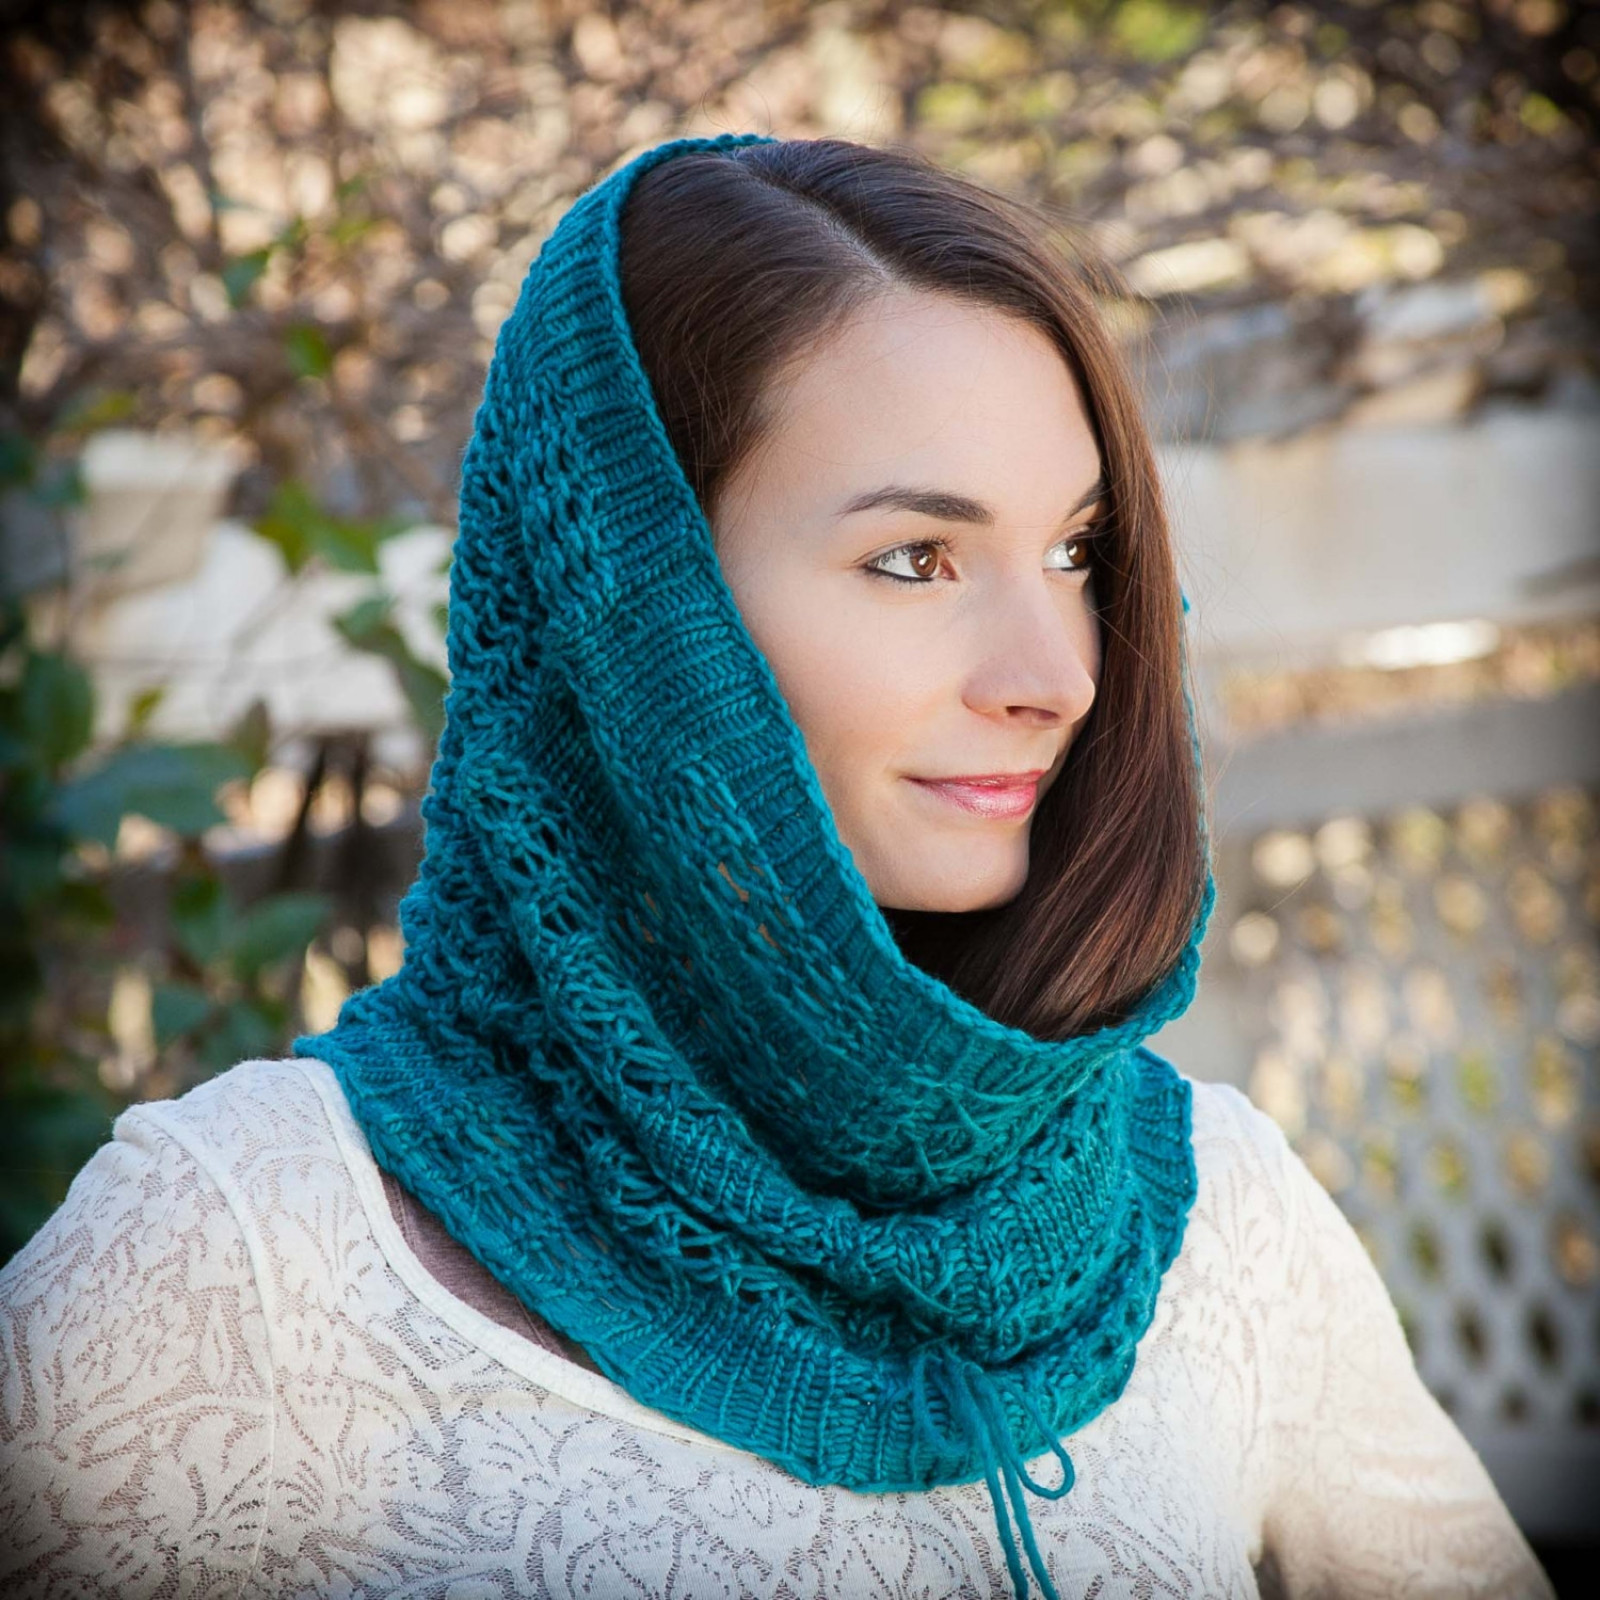 Beautiful Loom Knit Lace Snood Cowl Pattern Cowl Scarf Of Innovative 48 Photos Cowl Scarf